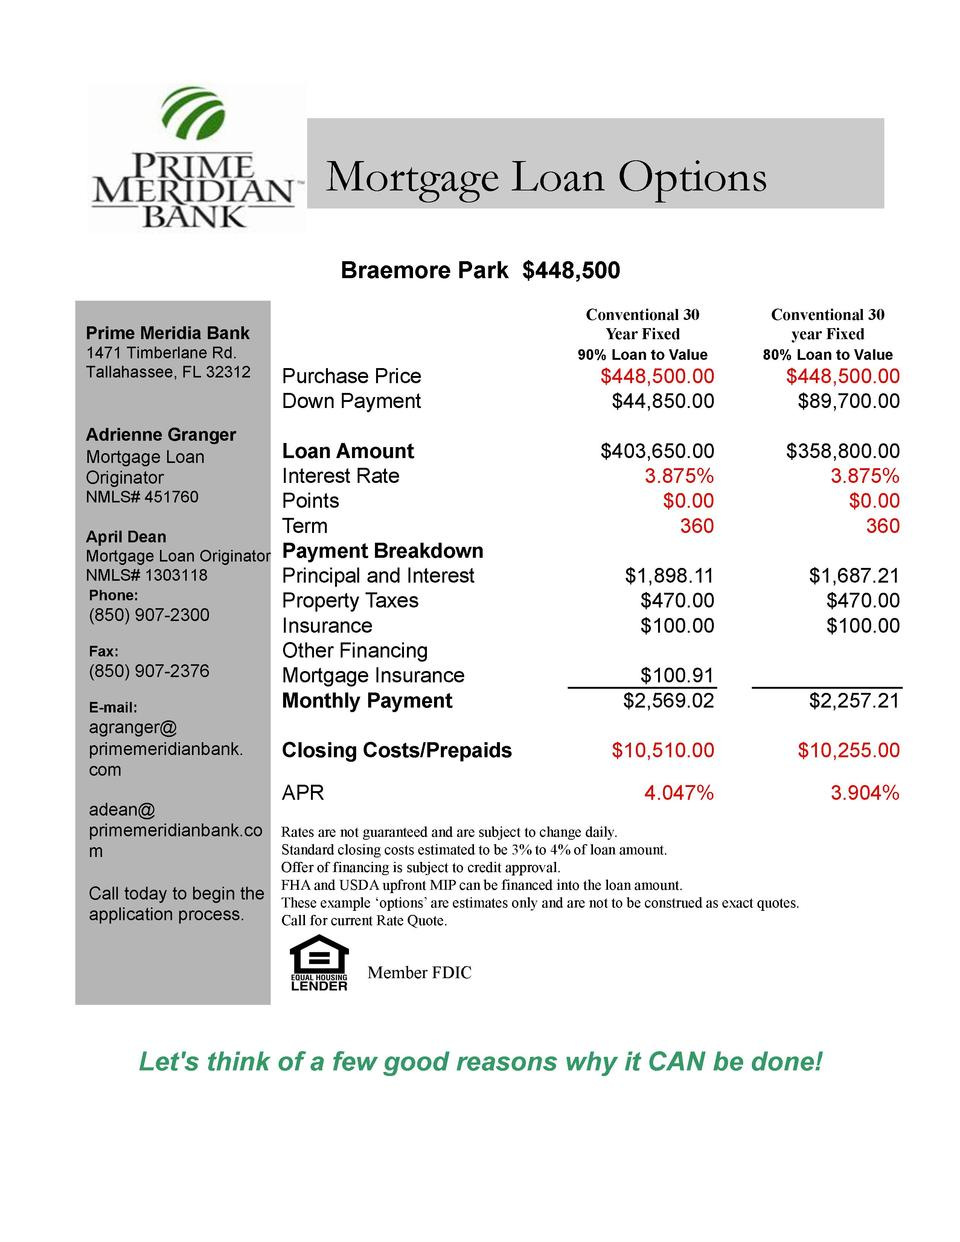 Mortgage Loan Options Braemore Park  448,500 Prime Meridia Bank 1471 Timberlane Rd. Tallahassee, FL 32312  Adrienne Grange...